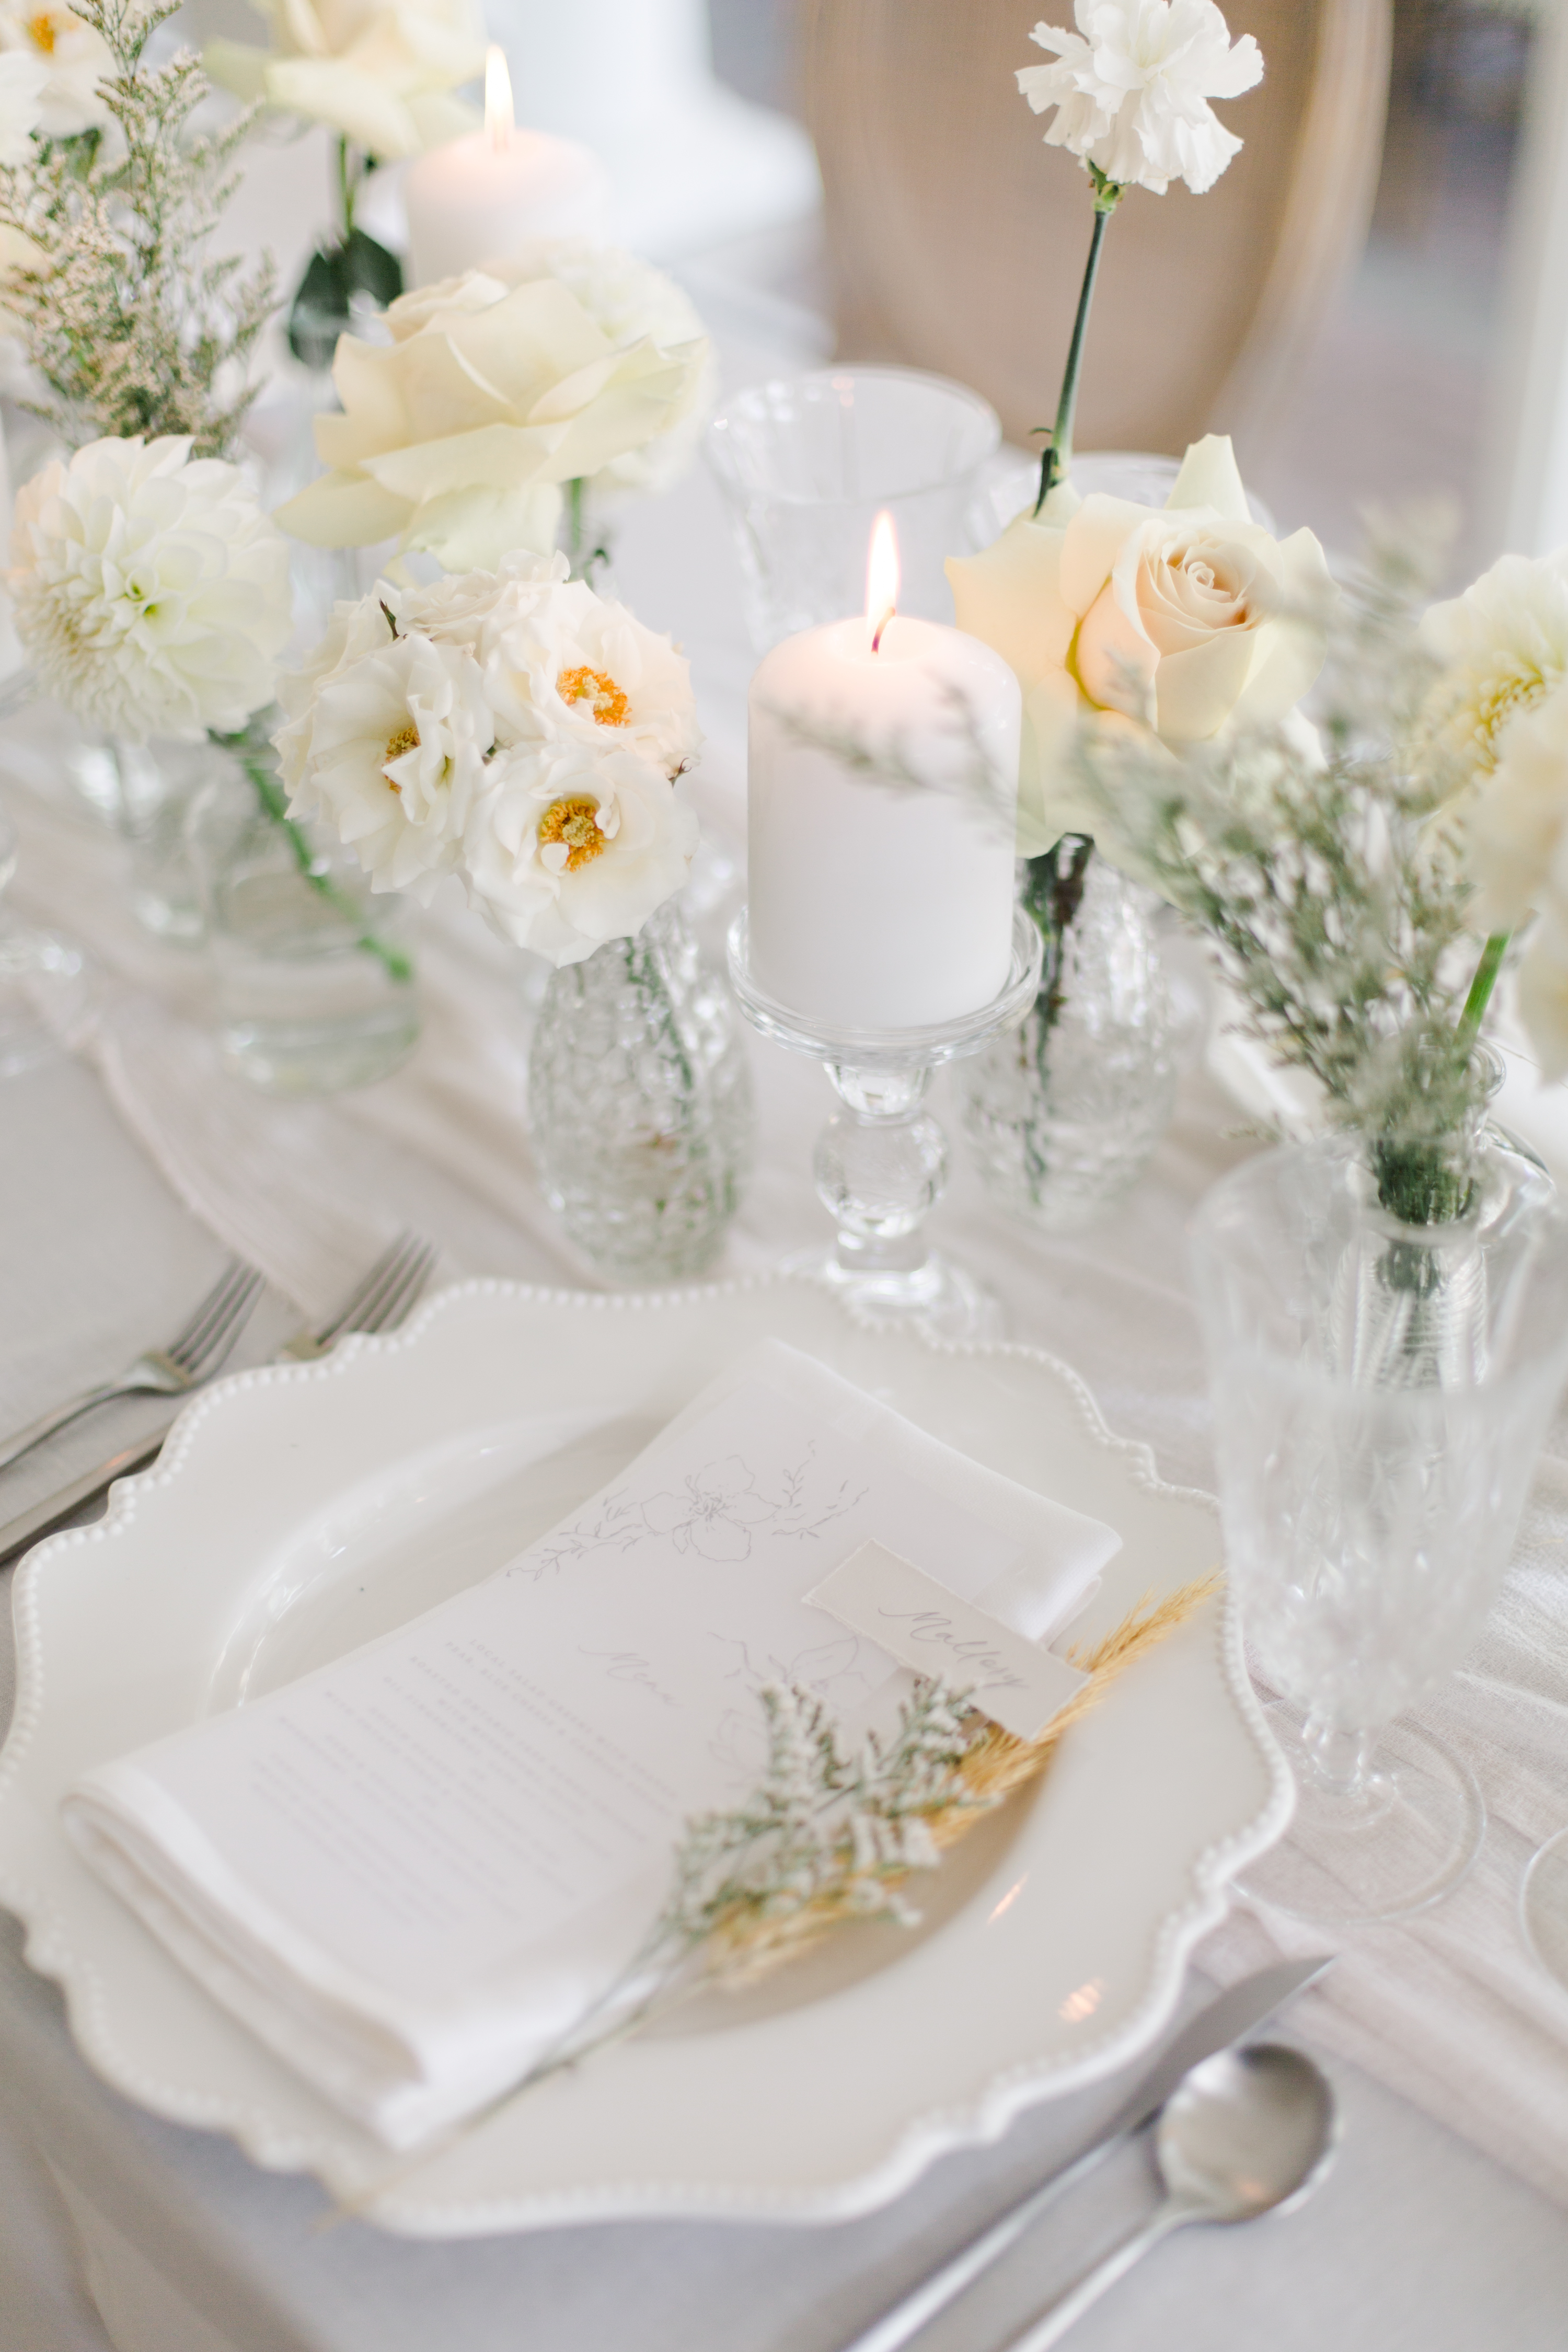 All white wedding guest place setting